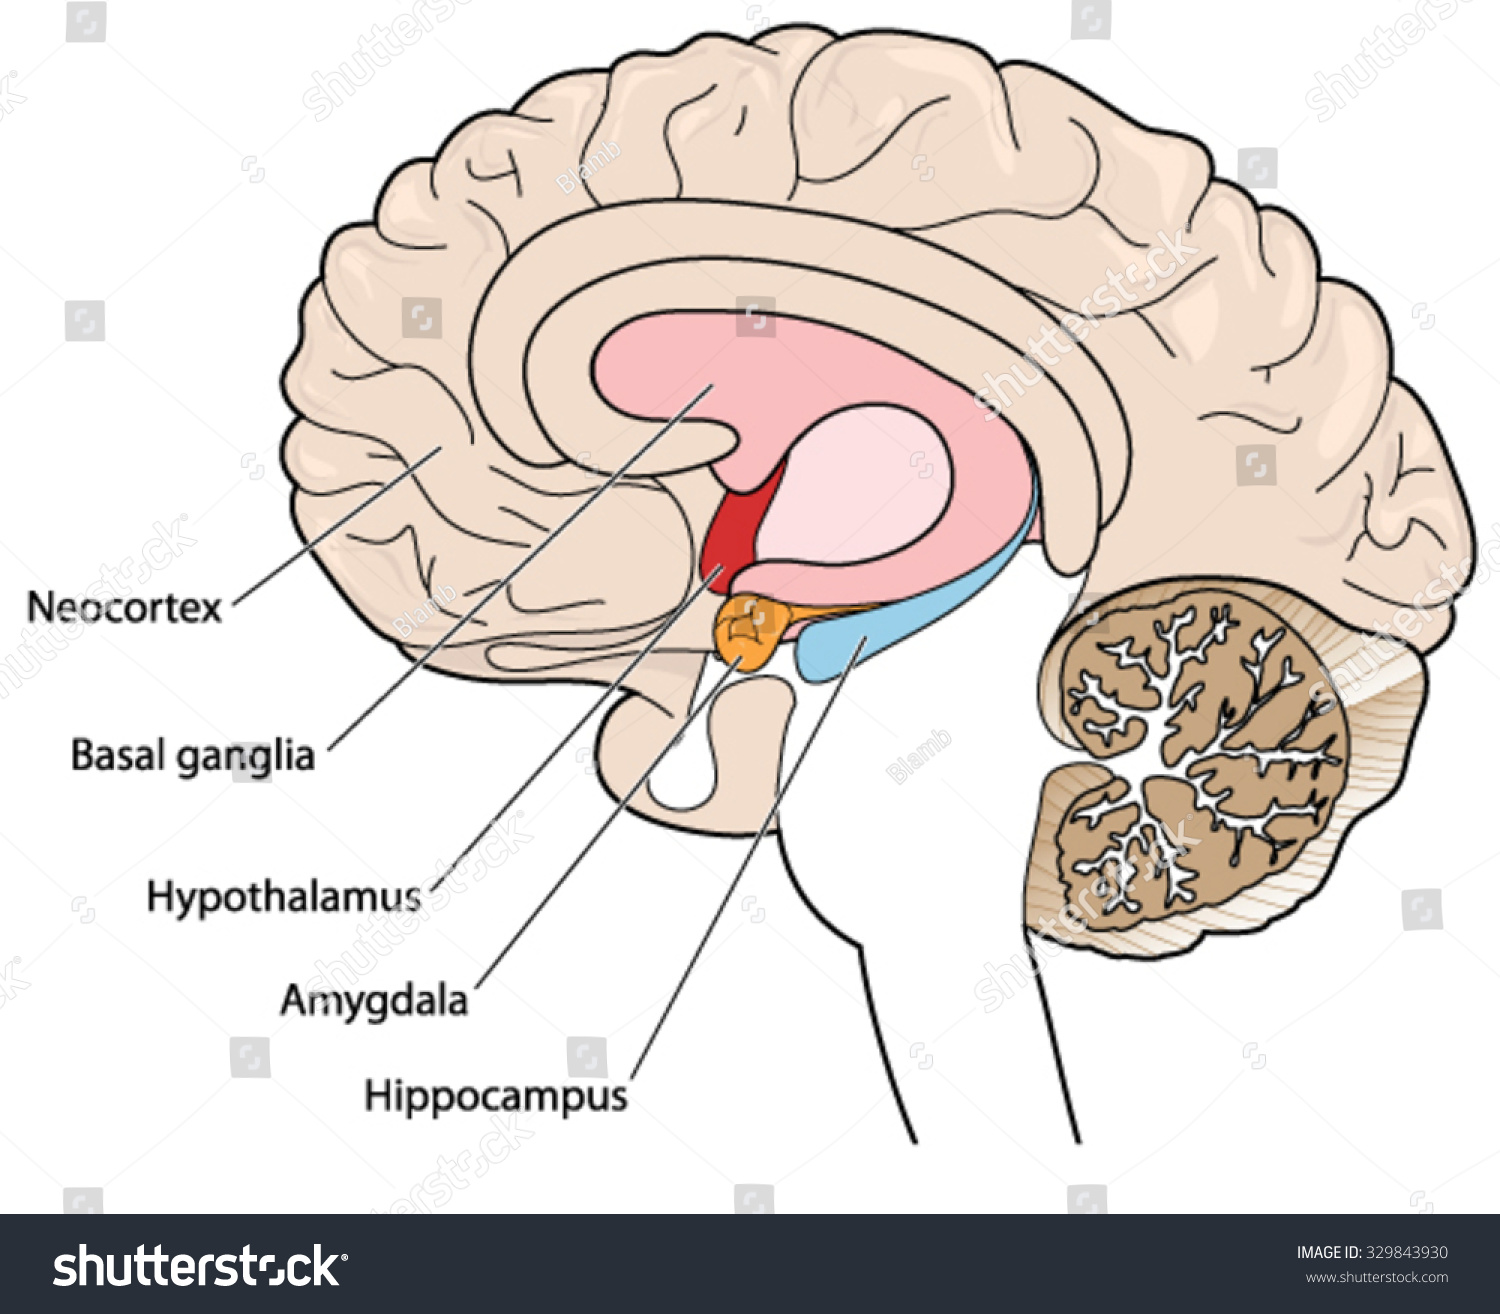 Human Brain Anatomy Hippocampus. Brain Anatomy - MTM